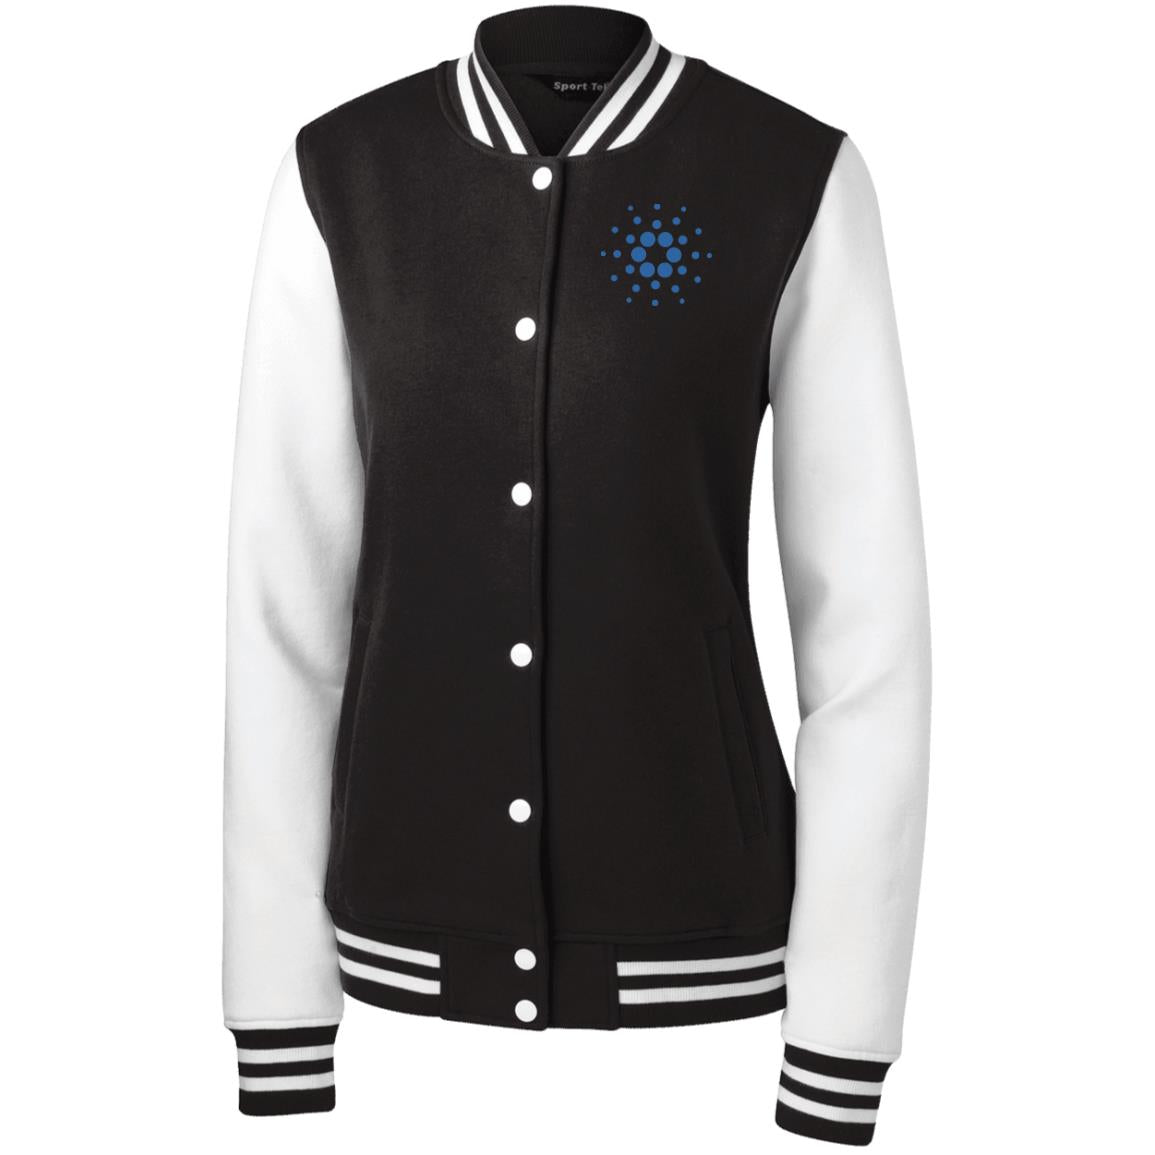 Cardano Fleece Letterman Jacket